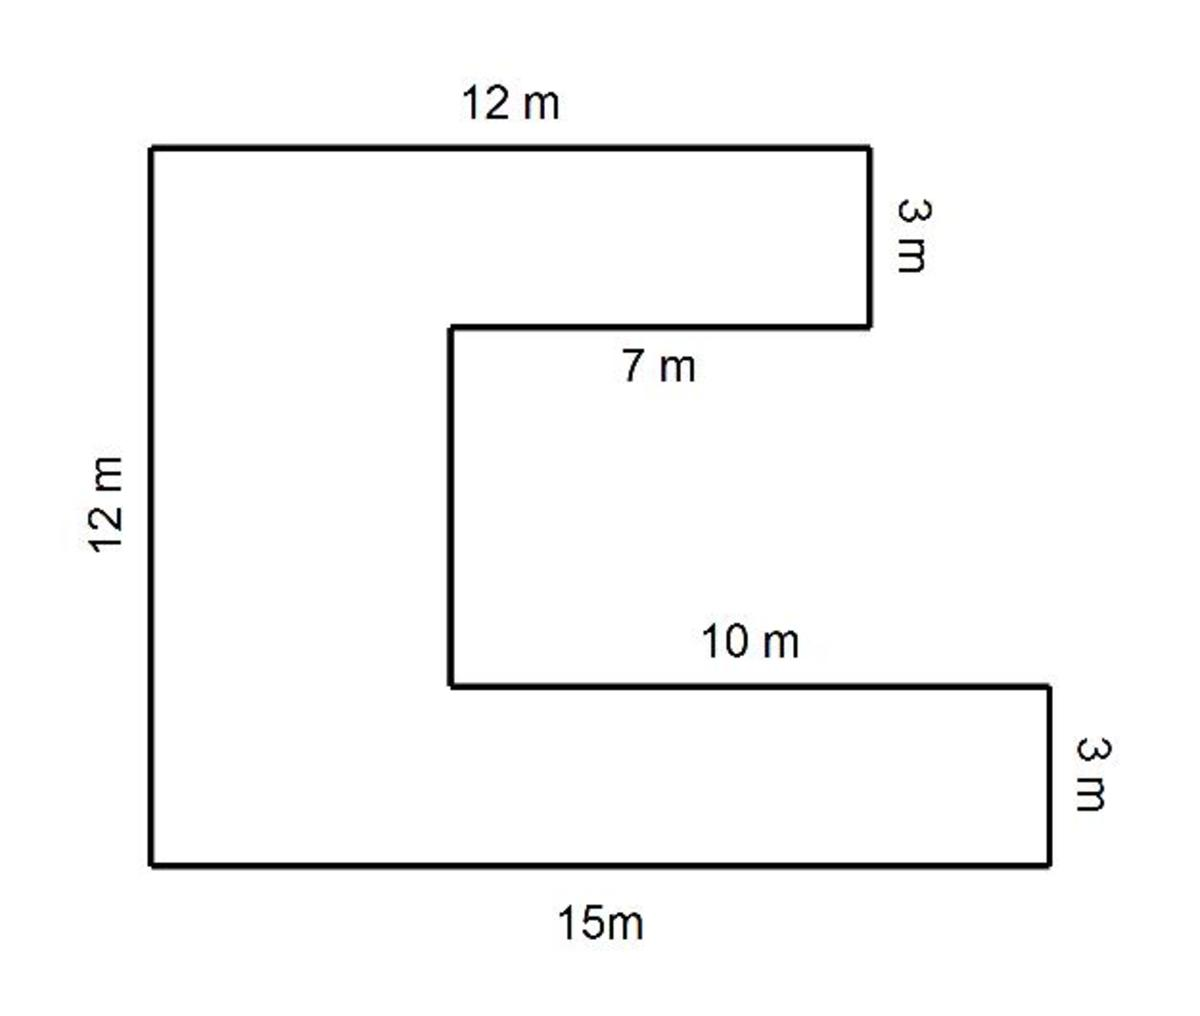 Compound C shapes. How to calculate the perimeter and area of a C shape.